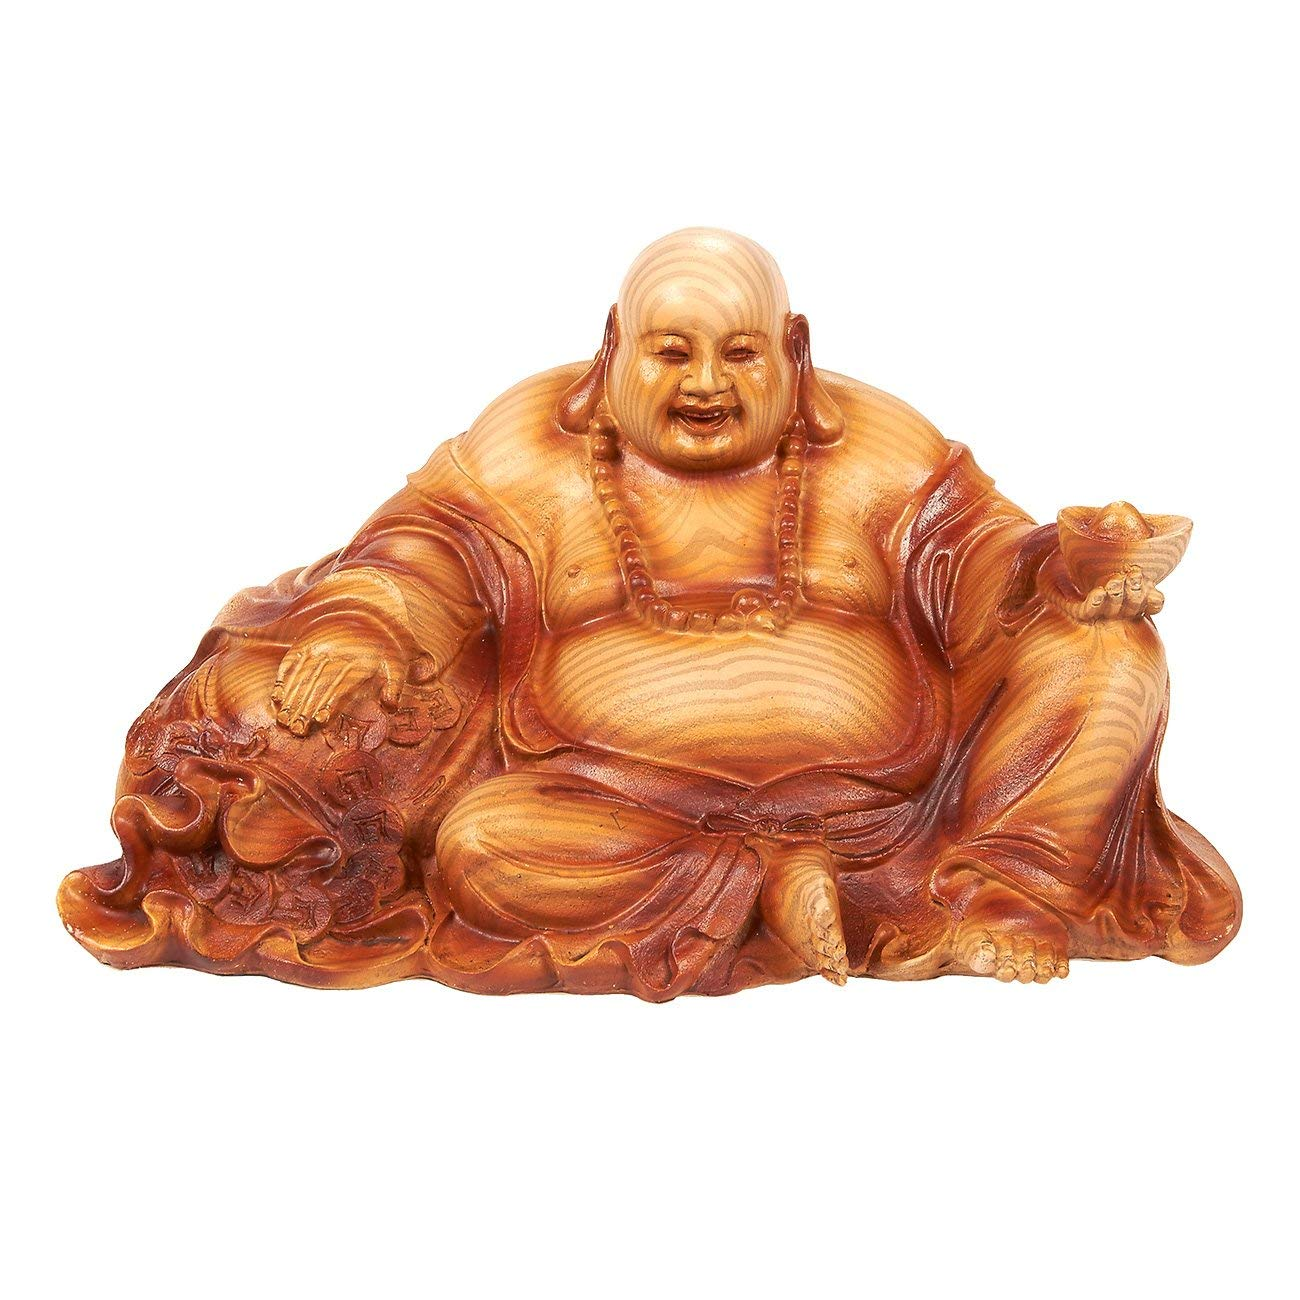 Juvale Happy Buddha Figurine - Laughing Buddha DecorSmall Buddha Figure Lucky Buddha Figurine Interior Decoration, Good Luck Charm, Brown - 8.7 x 5 x 5 Inches